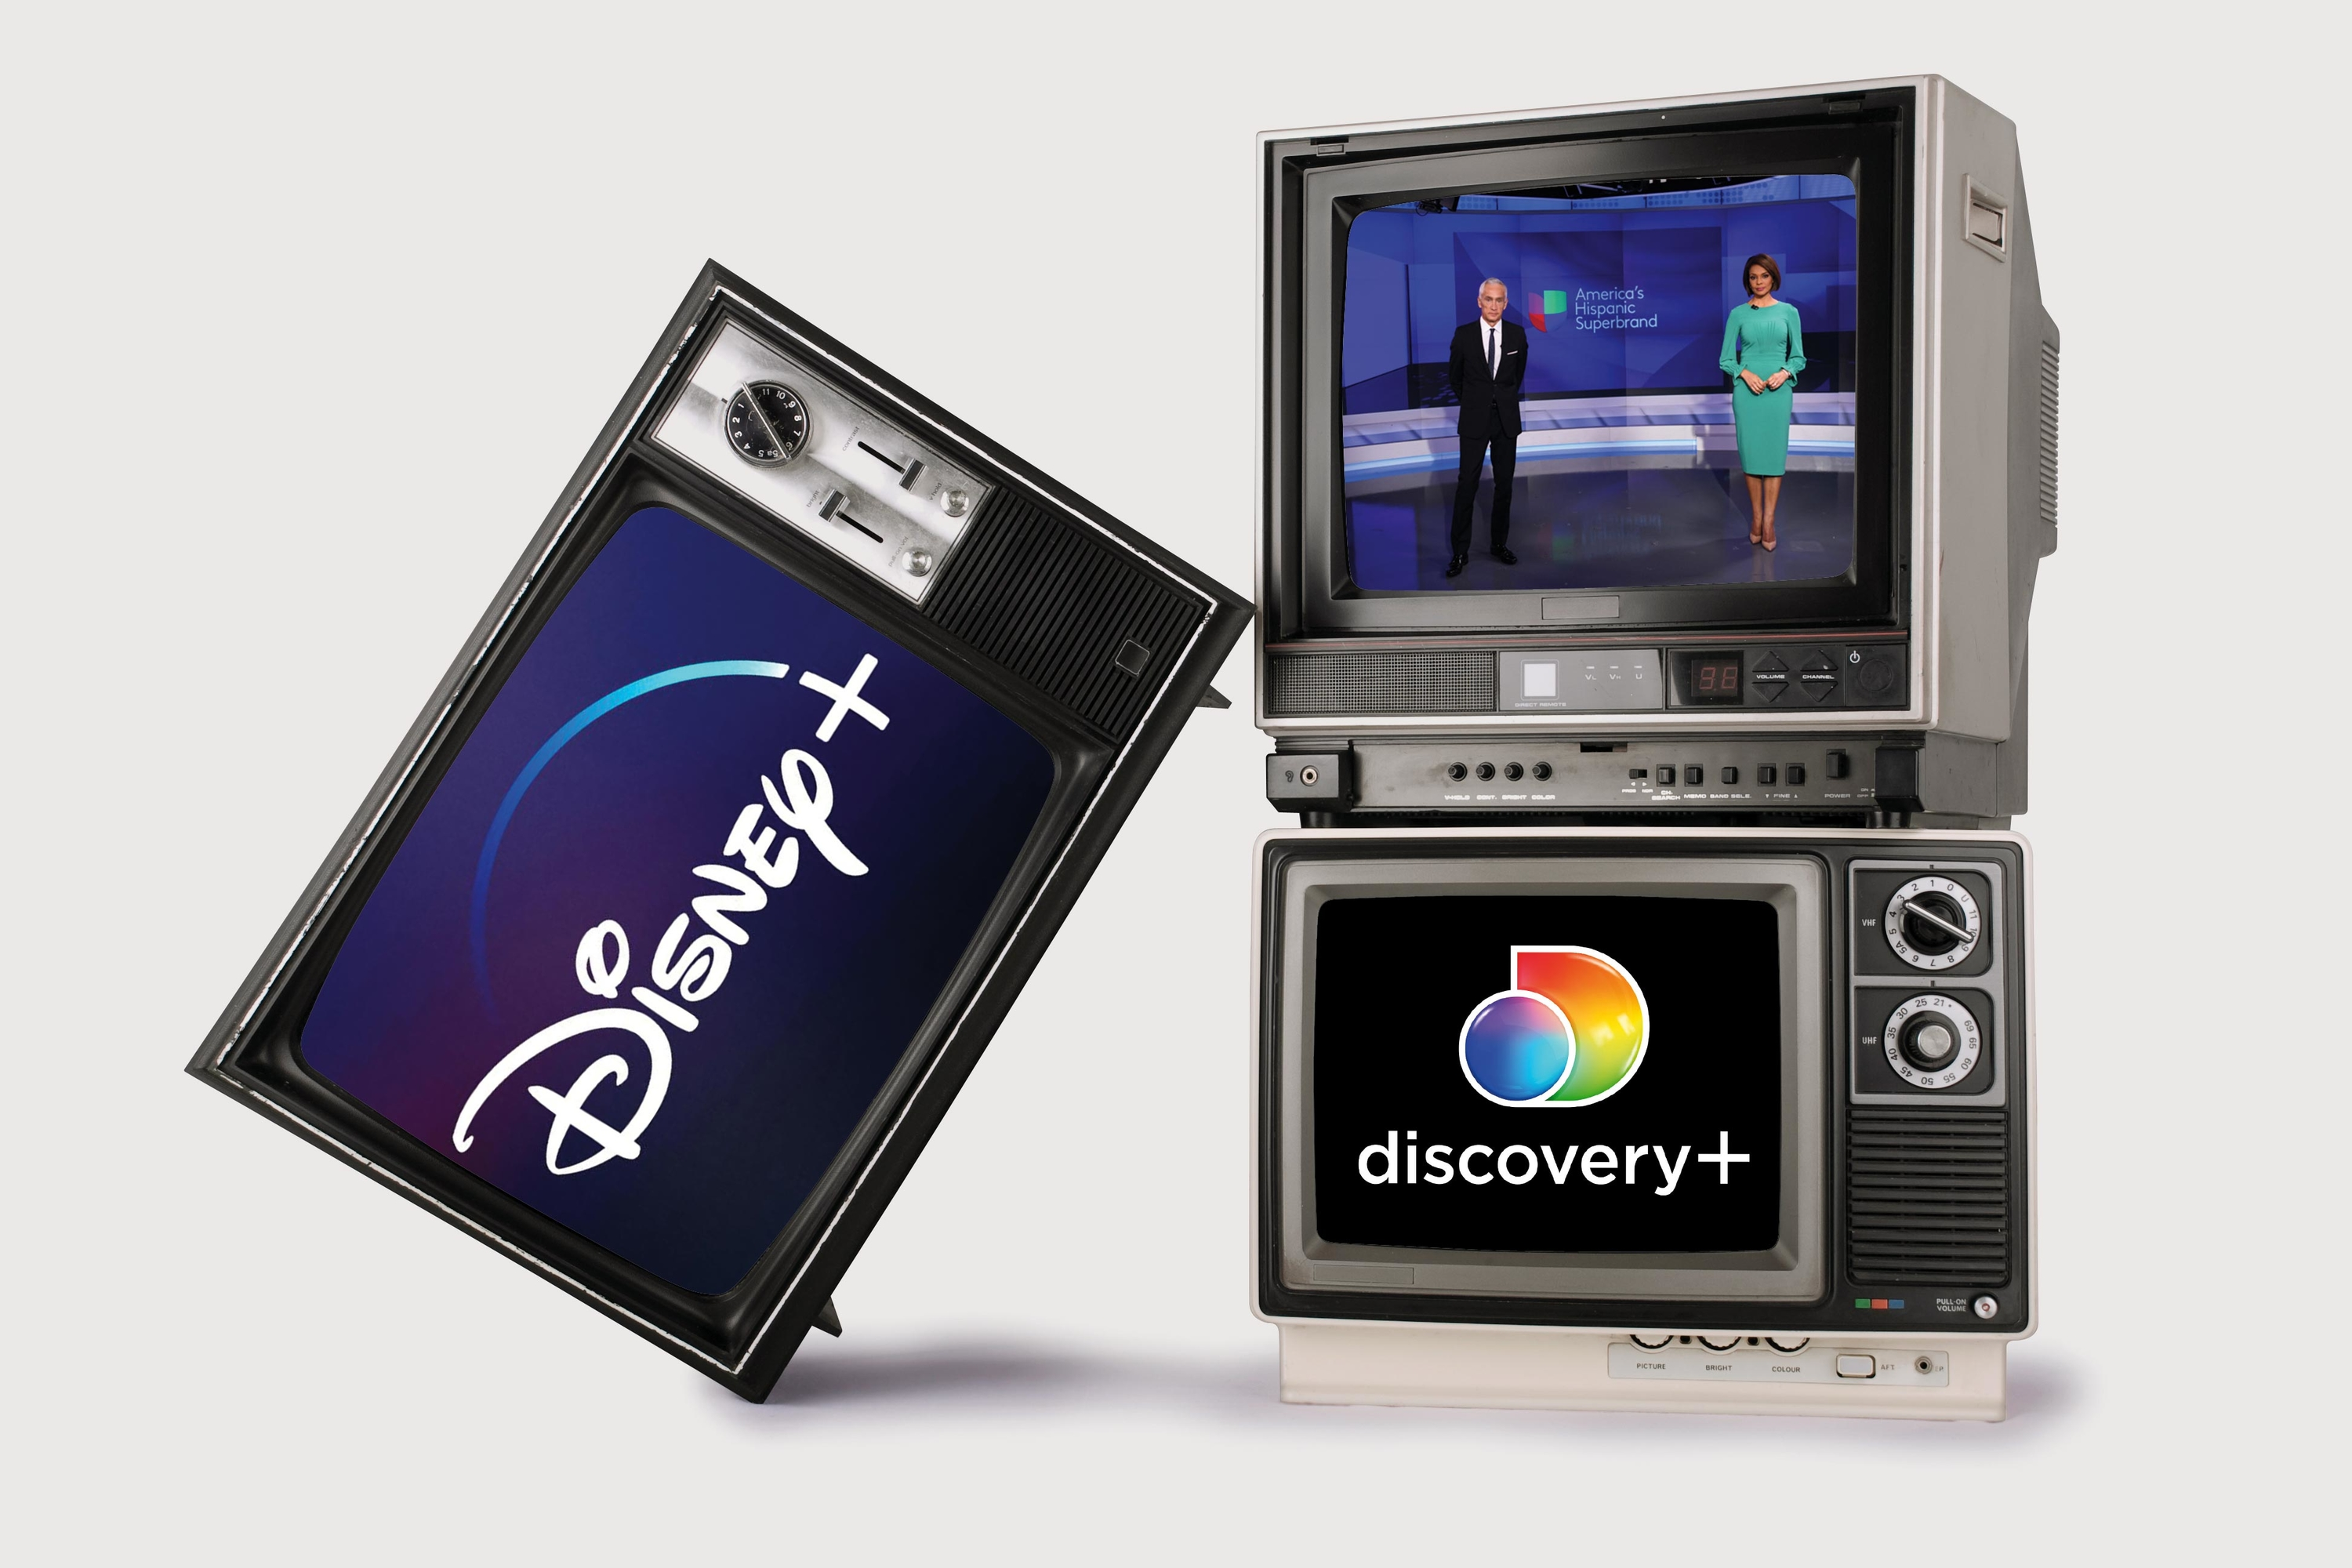 Upfronts Download: Disney details diversity, Discovery addresses AT&T deal